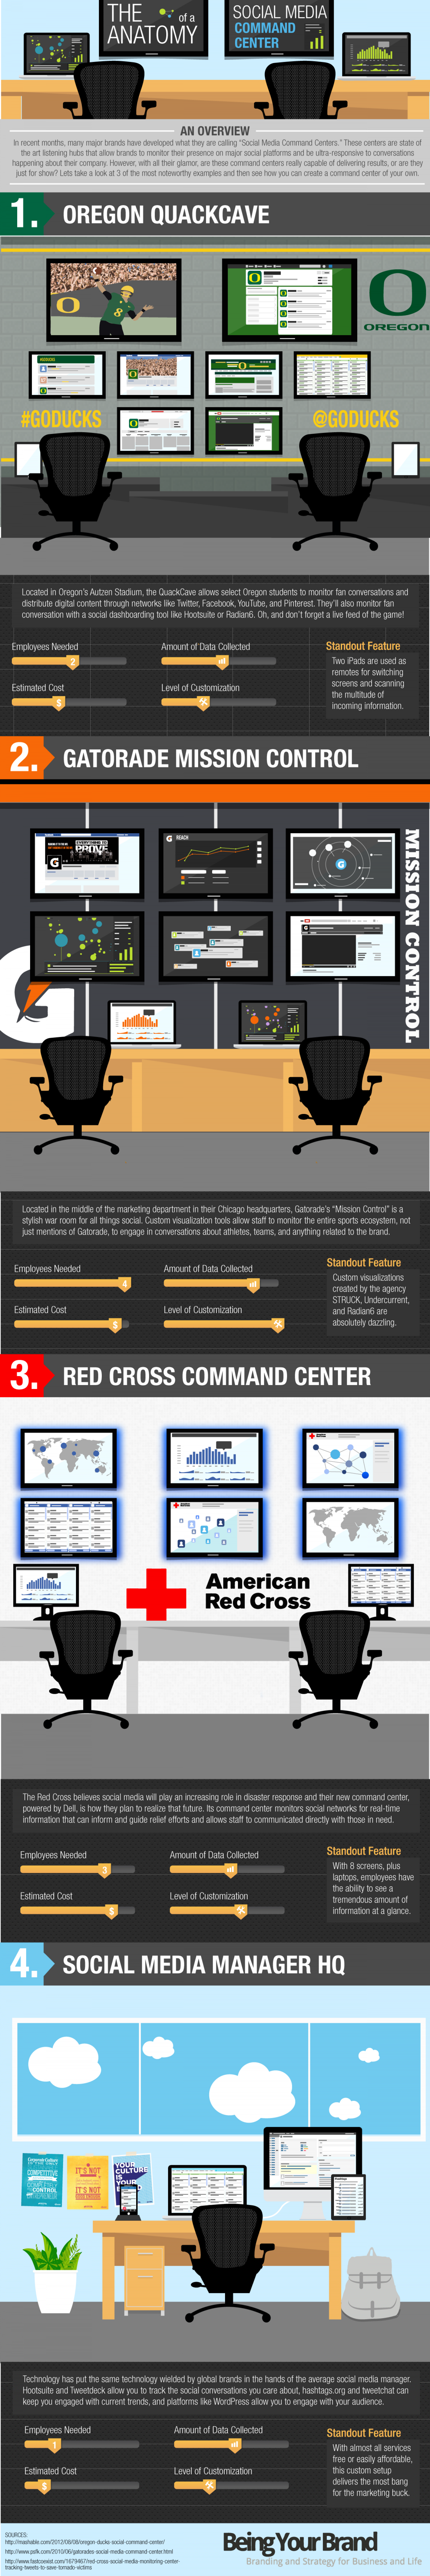 The Anatomy of a Social Media Command Center Infographic